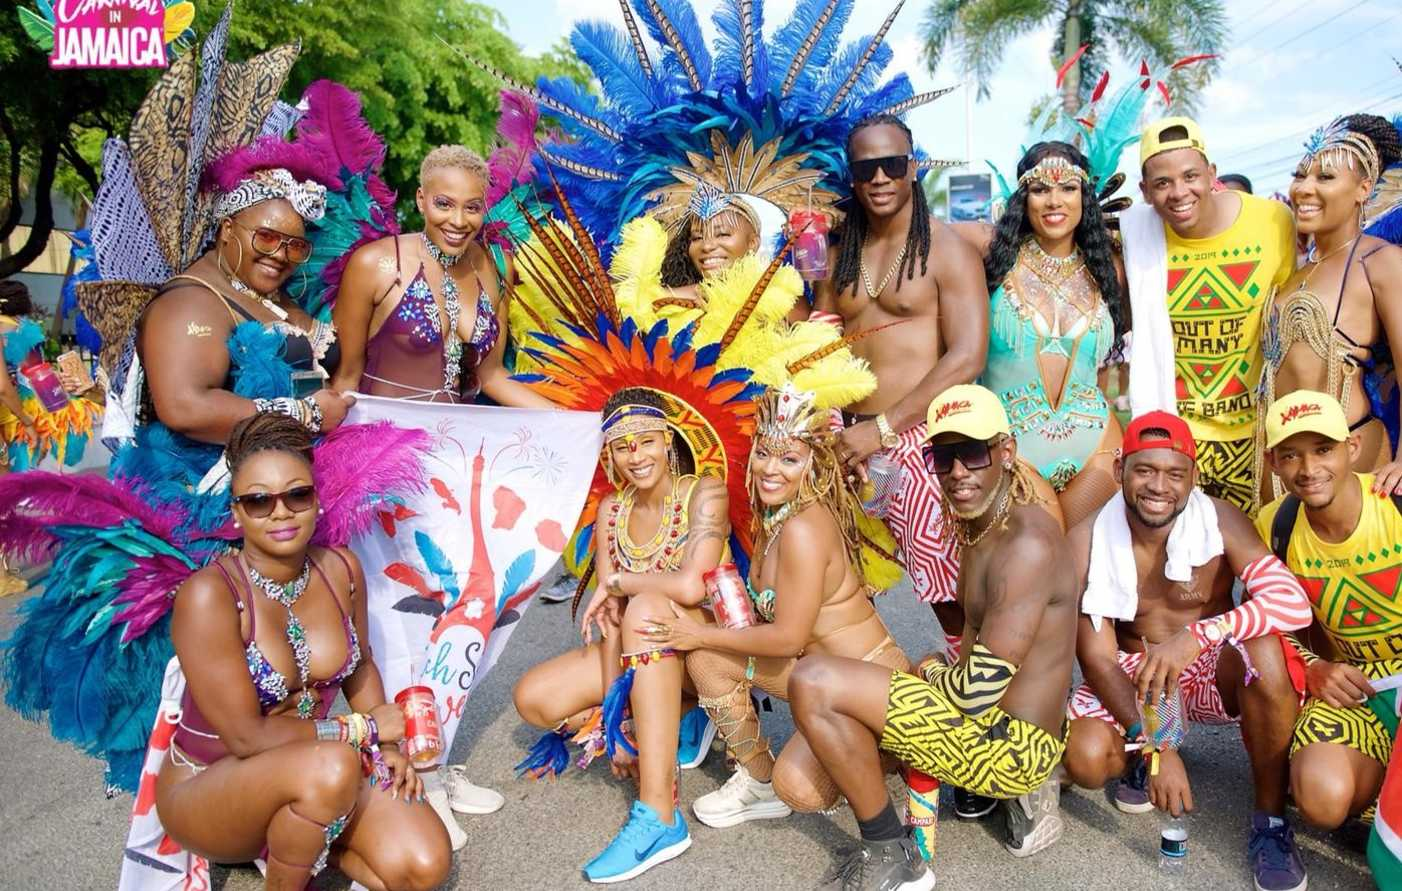 Carnival in Jamaica Home